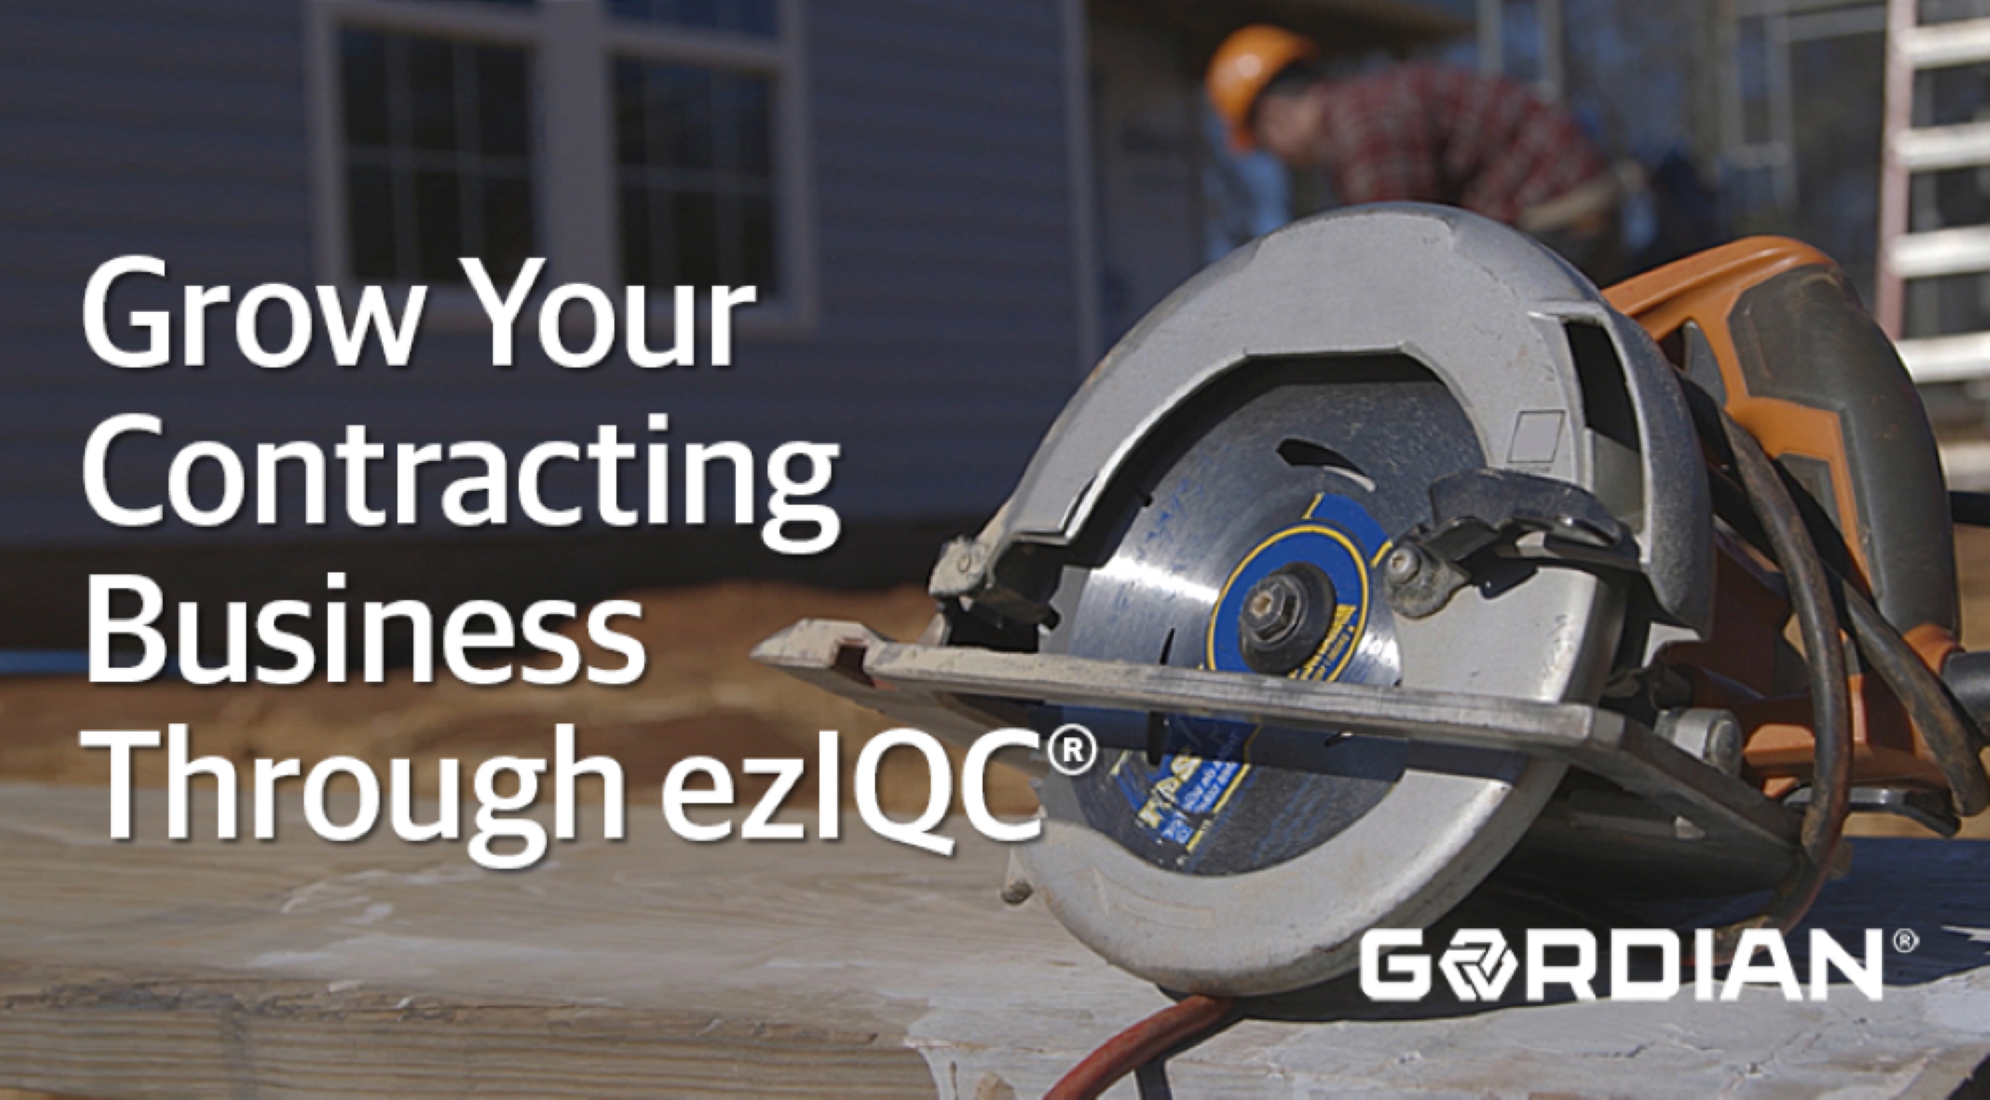 Grow Your Contracting Business Through ezIQC®